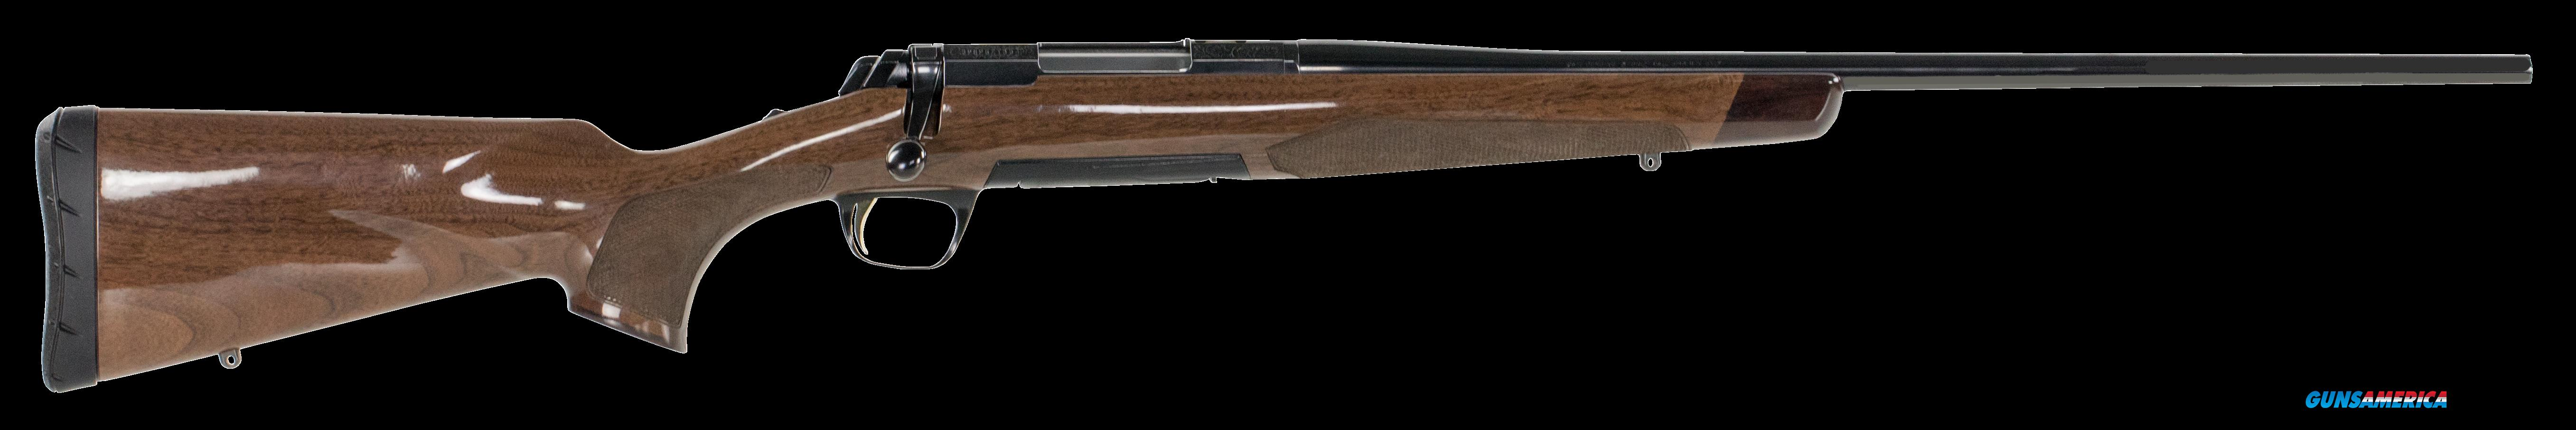 "Browning 035200224 X-Bolt Medallion Bolt 270 Winchester 22"" 4+1 Walnut Stock Blued  Guns > Rifles > Browning Rifles > Bolt Action > Hunting > Blue"